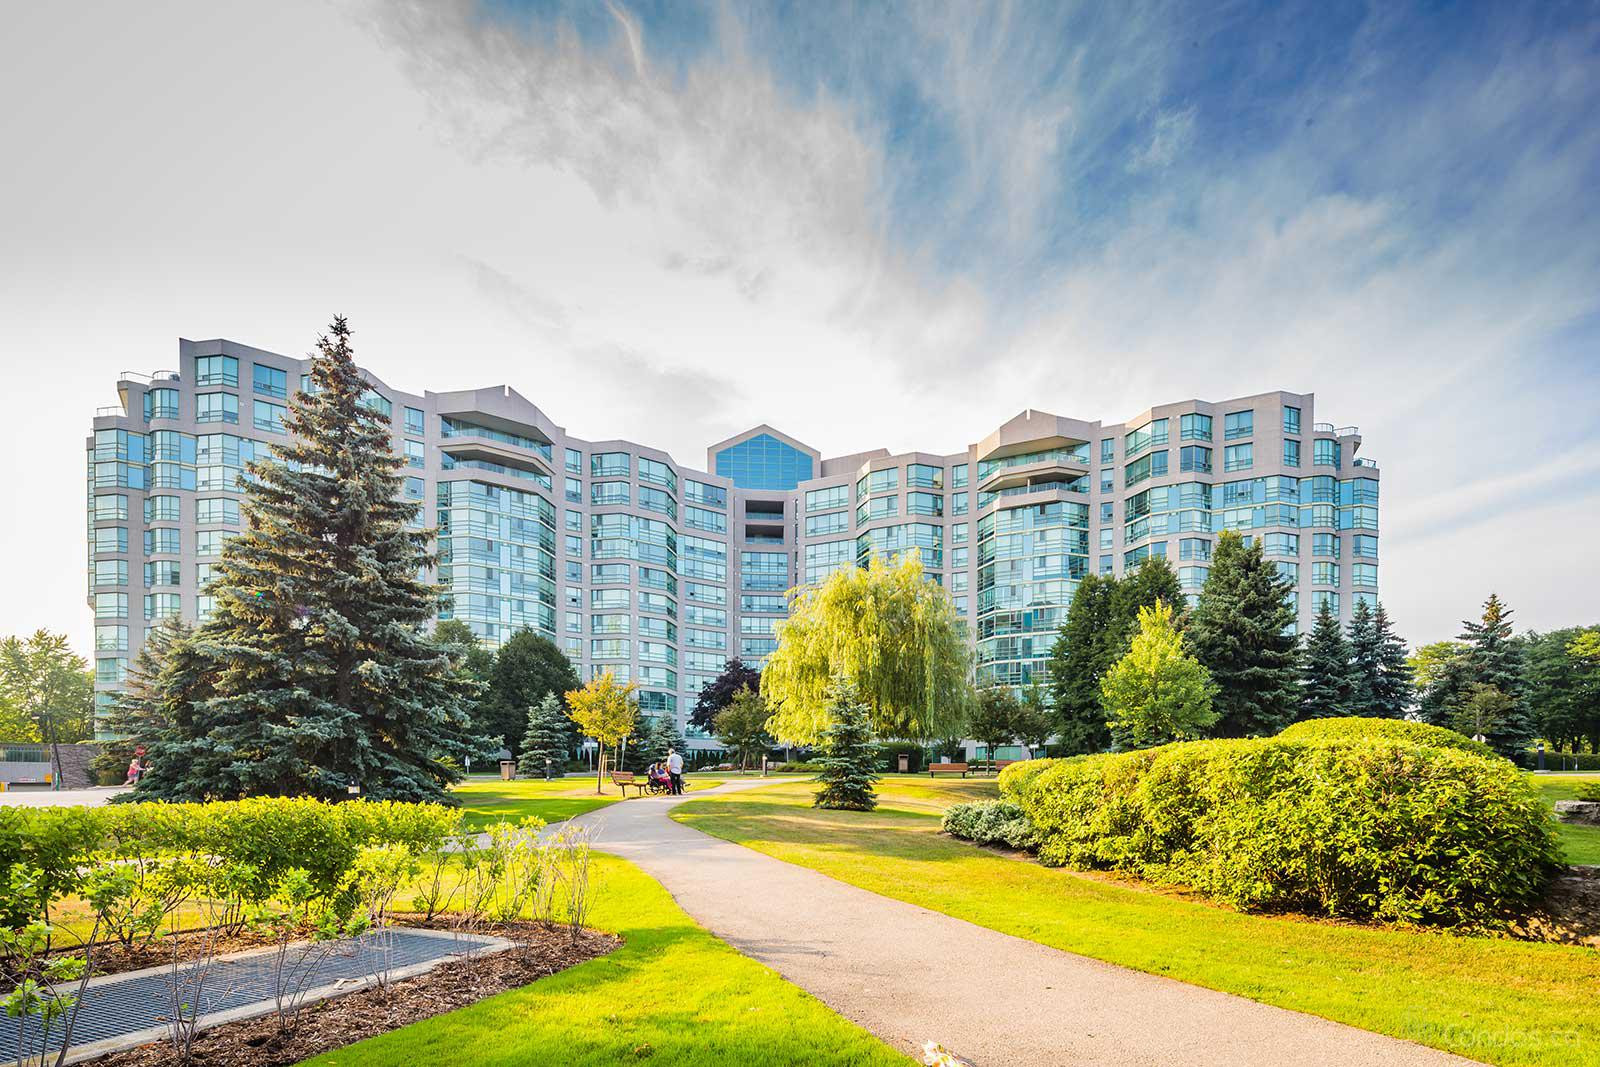 The Landmark of Thornhill at 7805 Bayview Ave, Markham 0